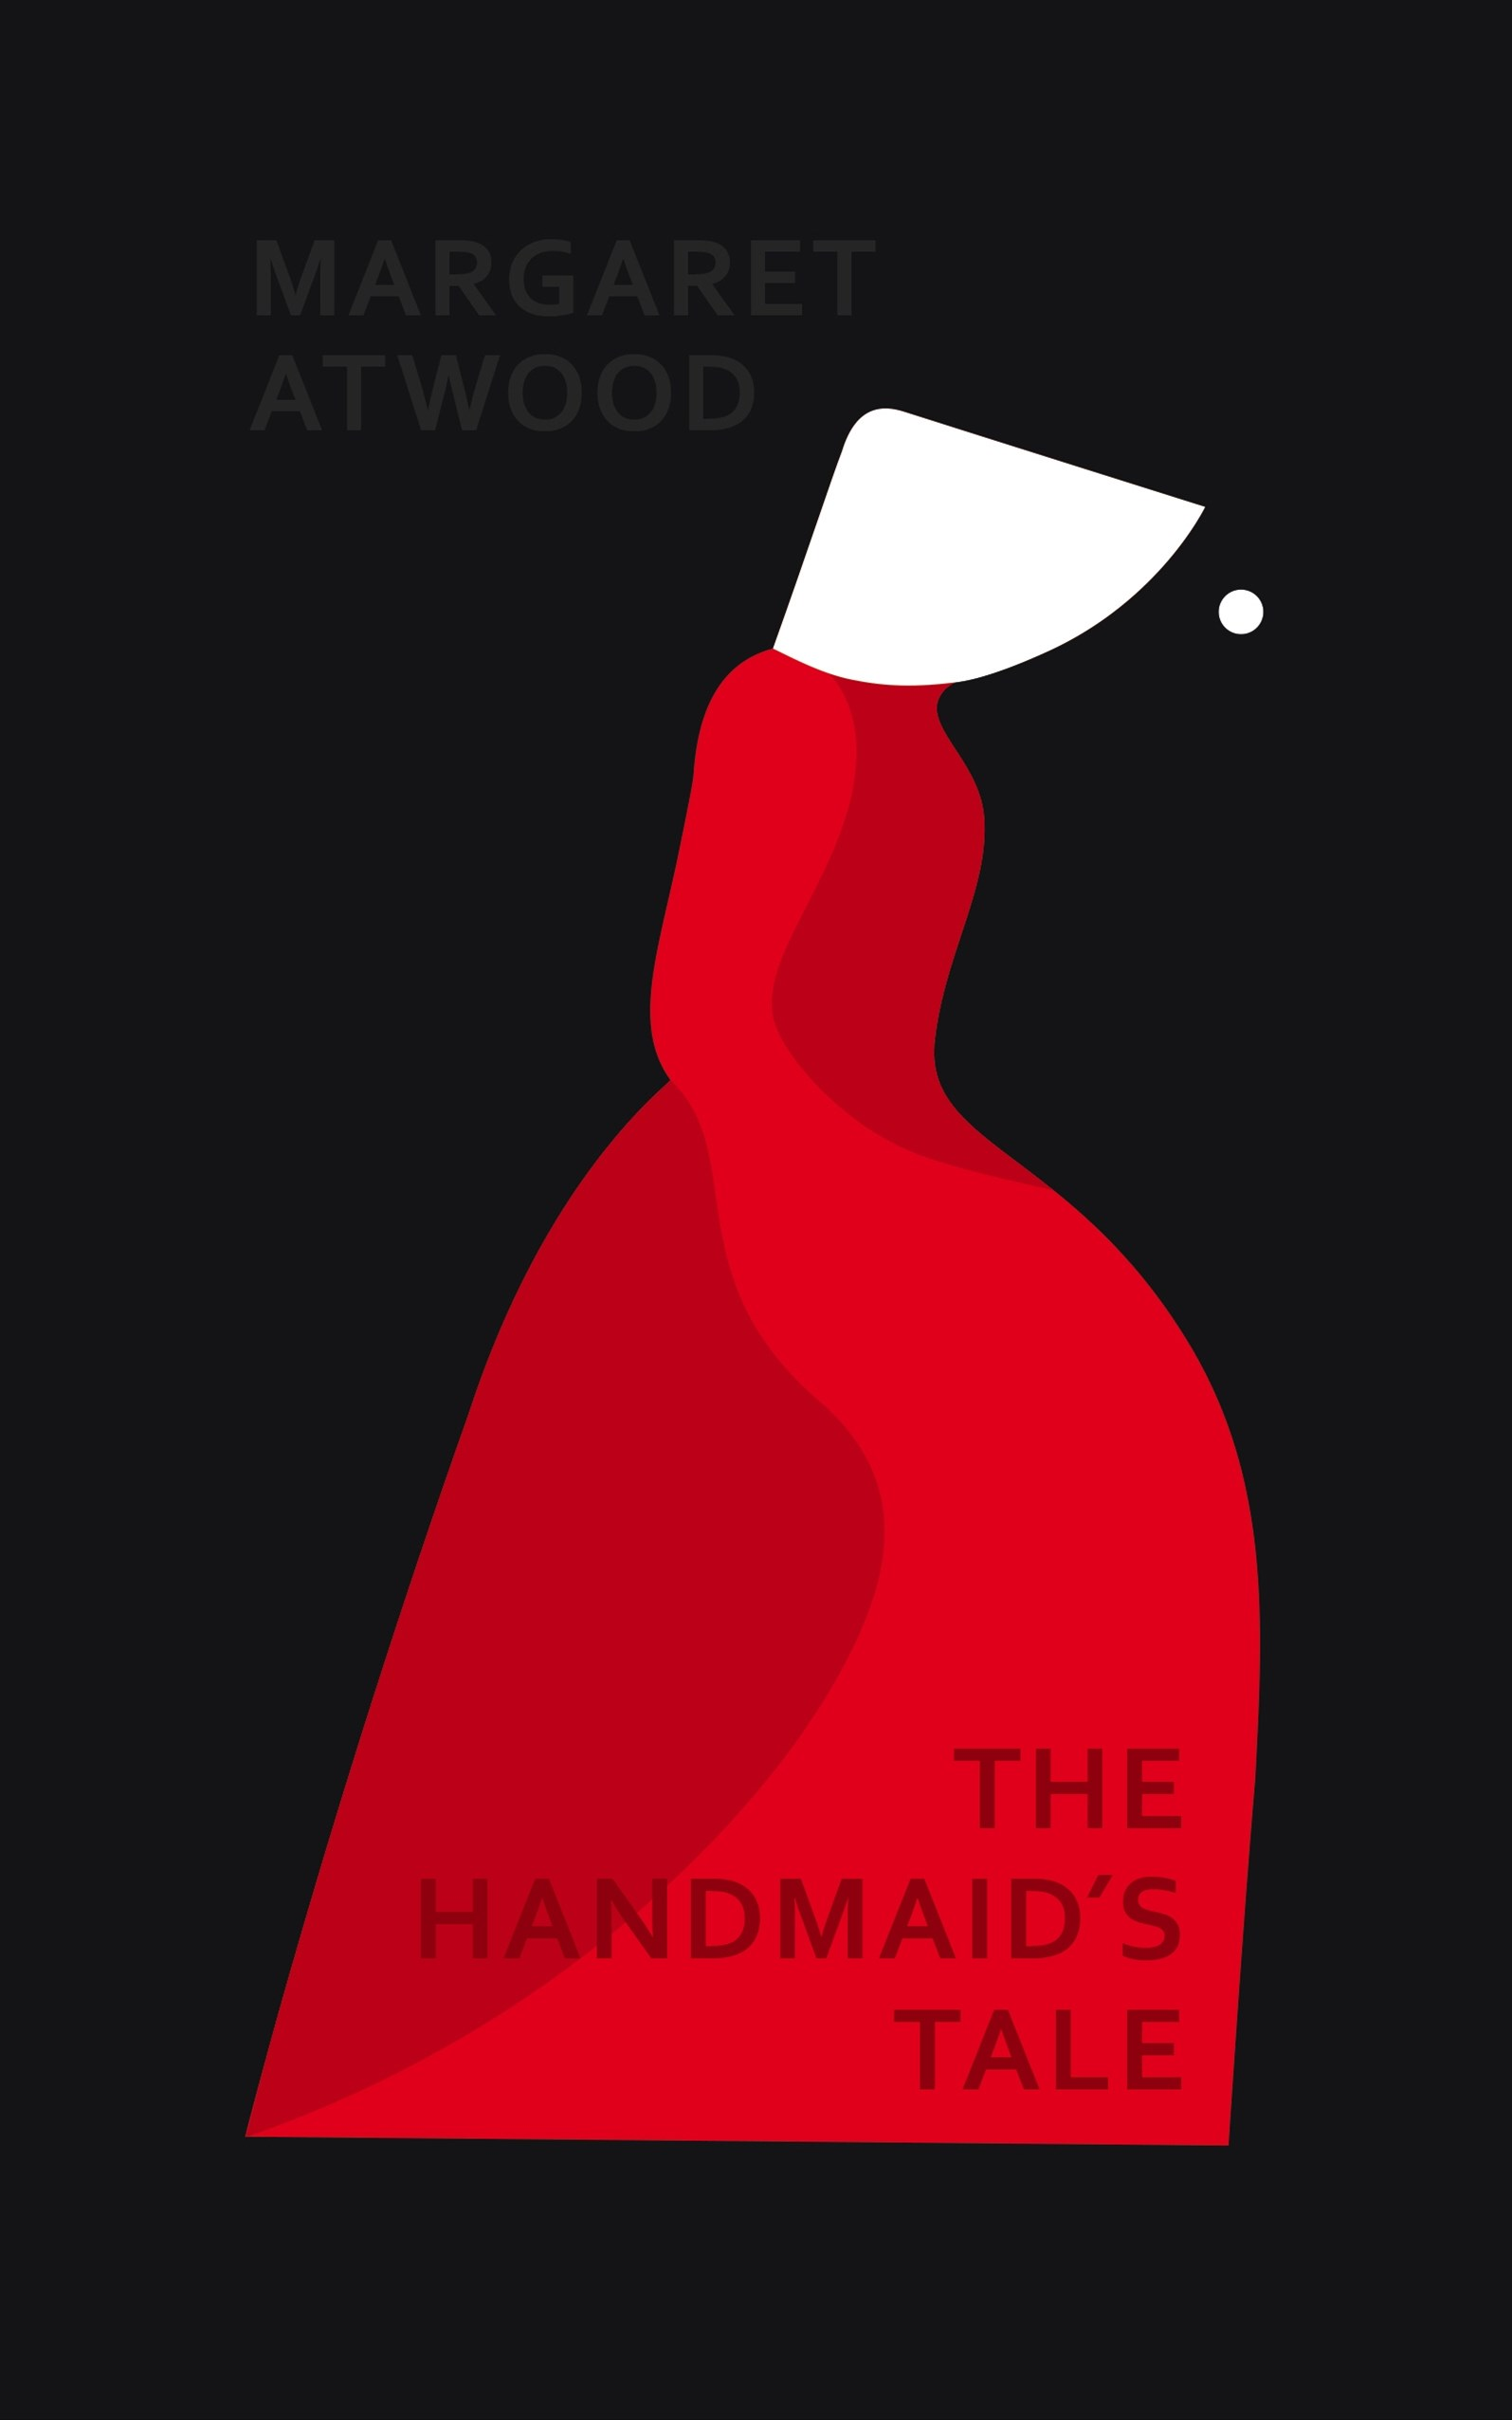 The Handmaid's Tale - Gift Edition